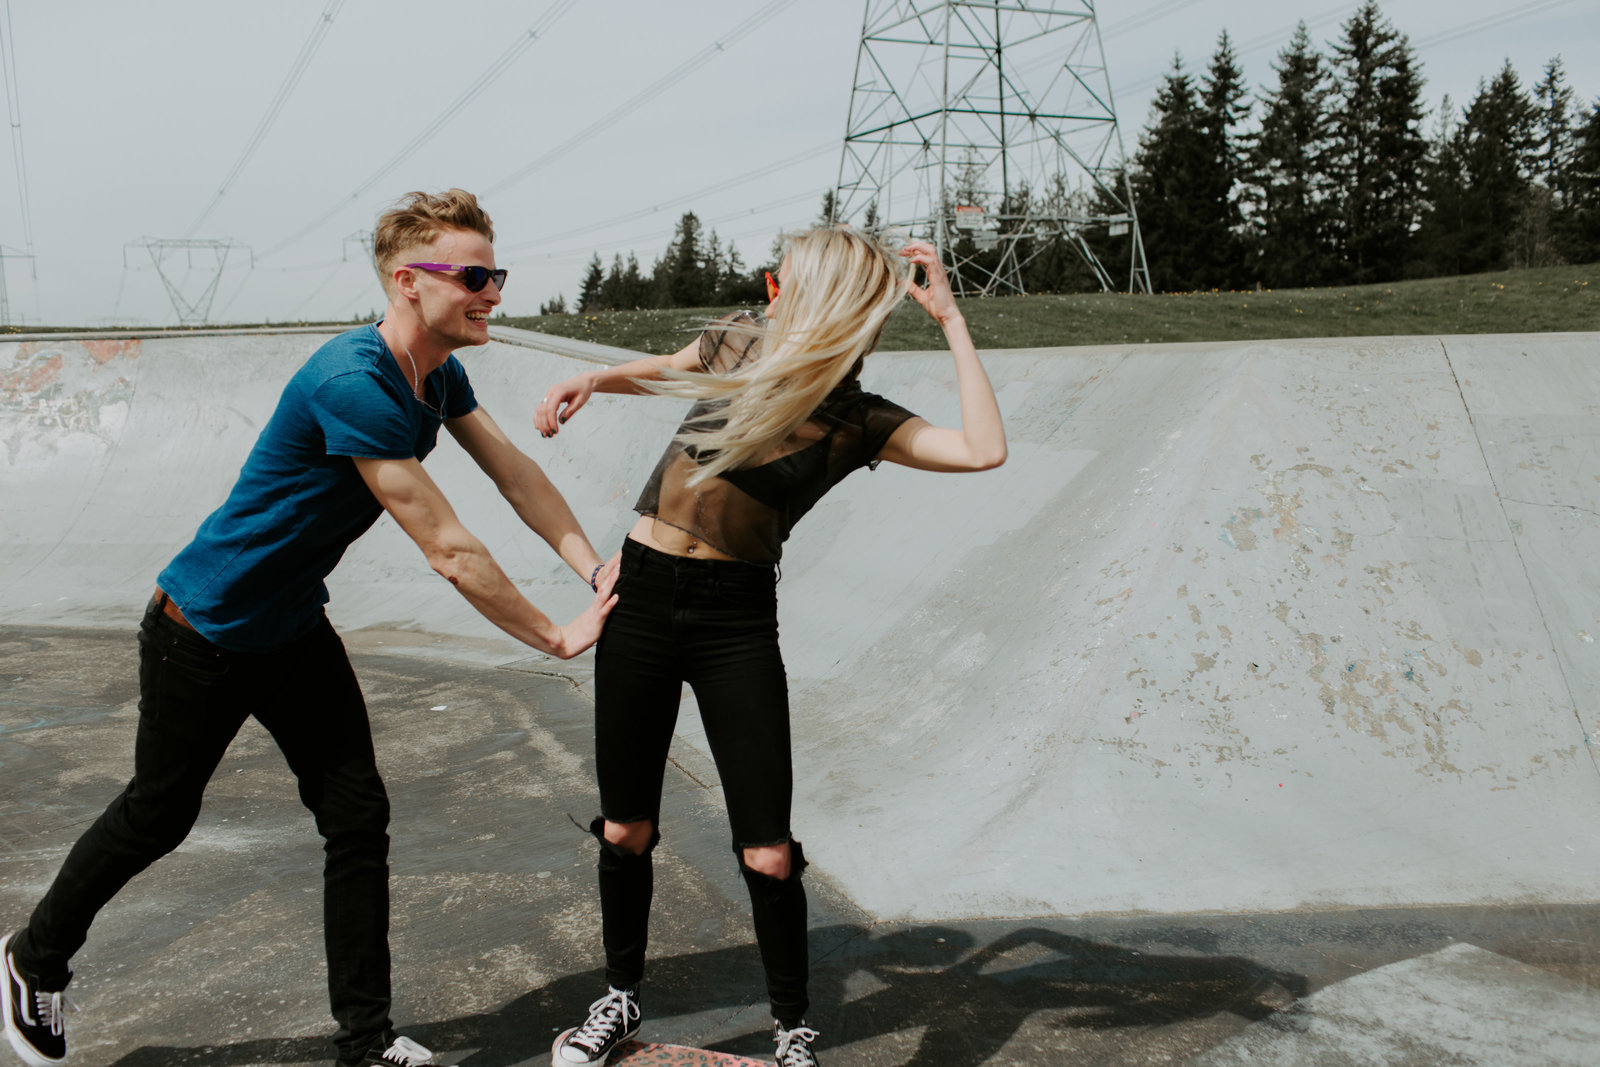 SKATE-PARK-ENGAGEMENT-MEGHAN-HEMSTRA-PHOTOGRAPHY-2